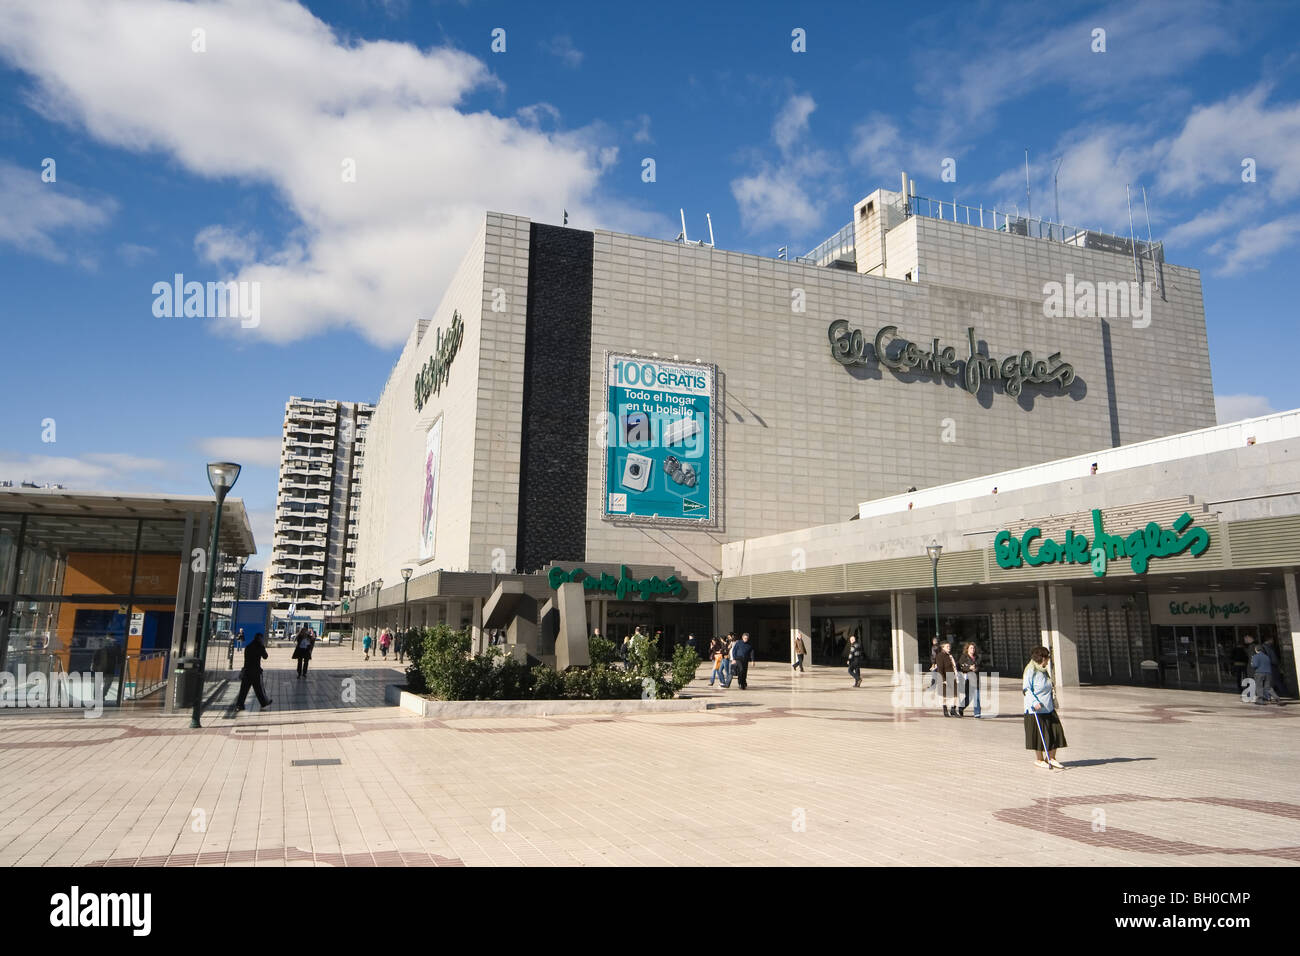 El corte ingles department store malaga costa del sol for Servilleteros el corte ingles